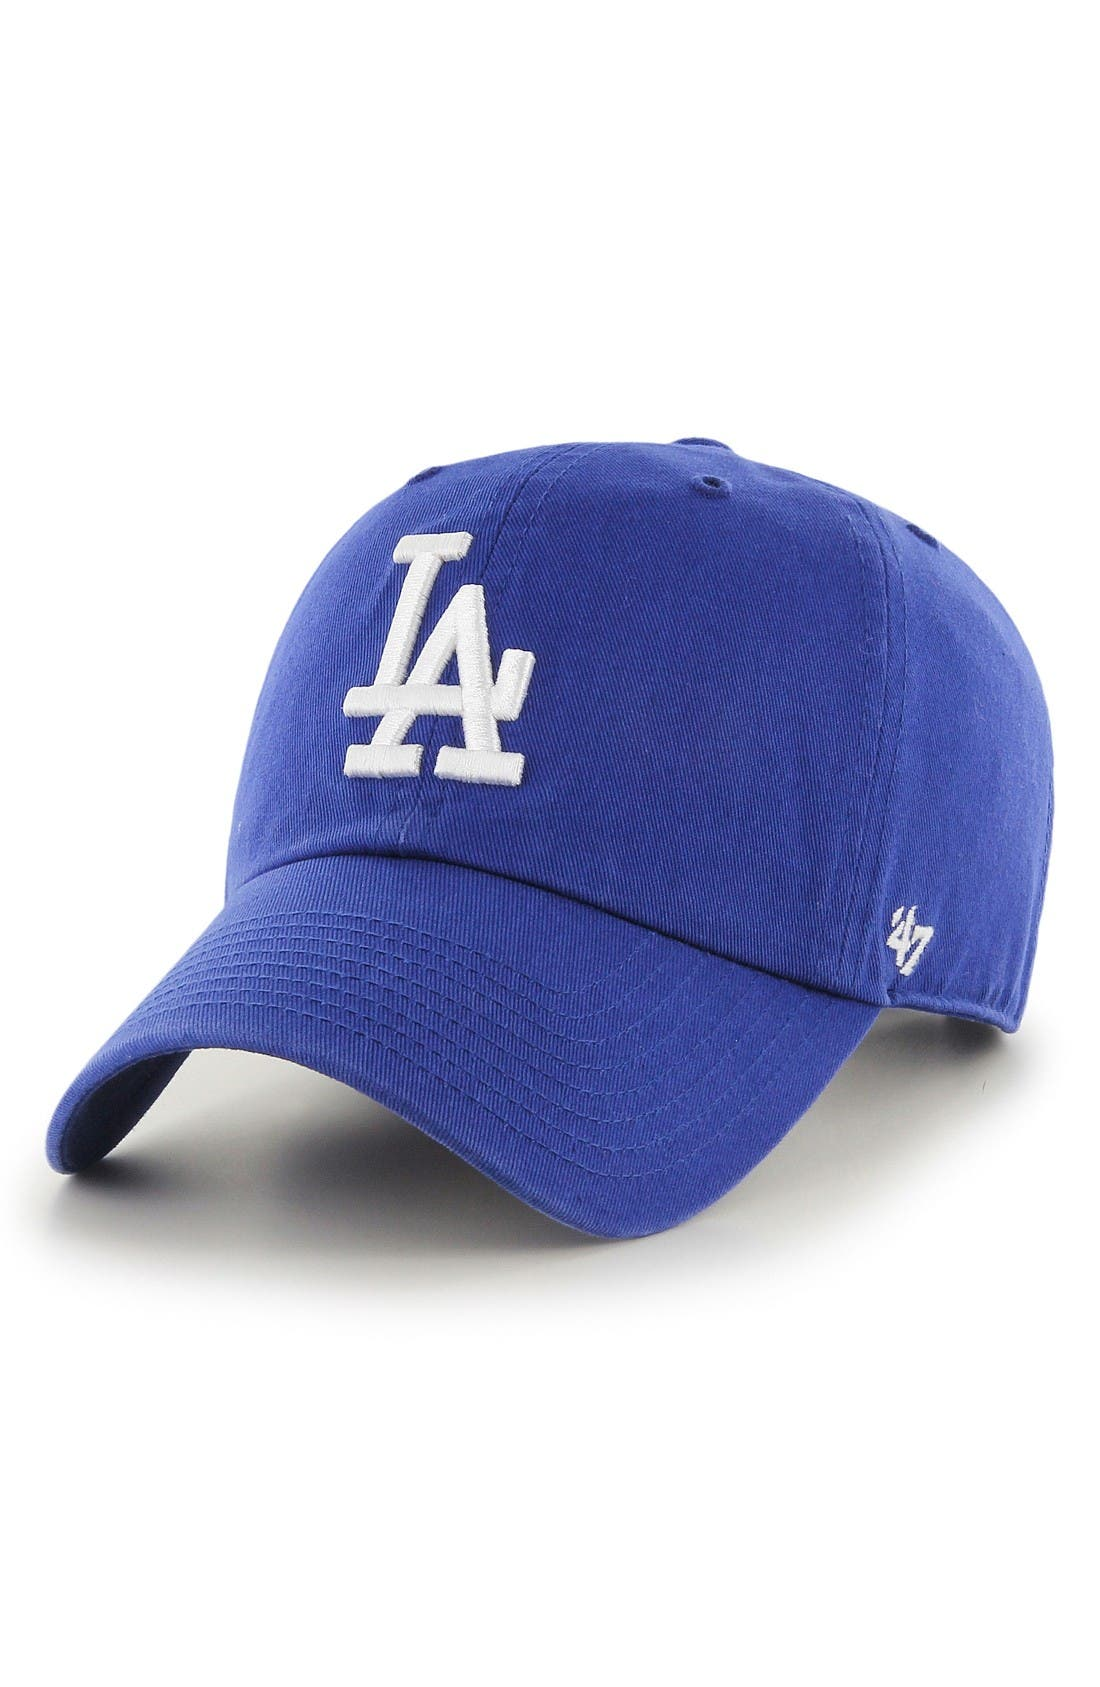 '47 Clean Up LA Dodgers Baseball Cap